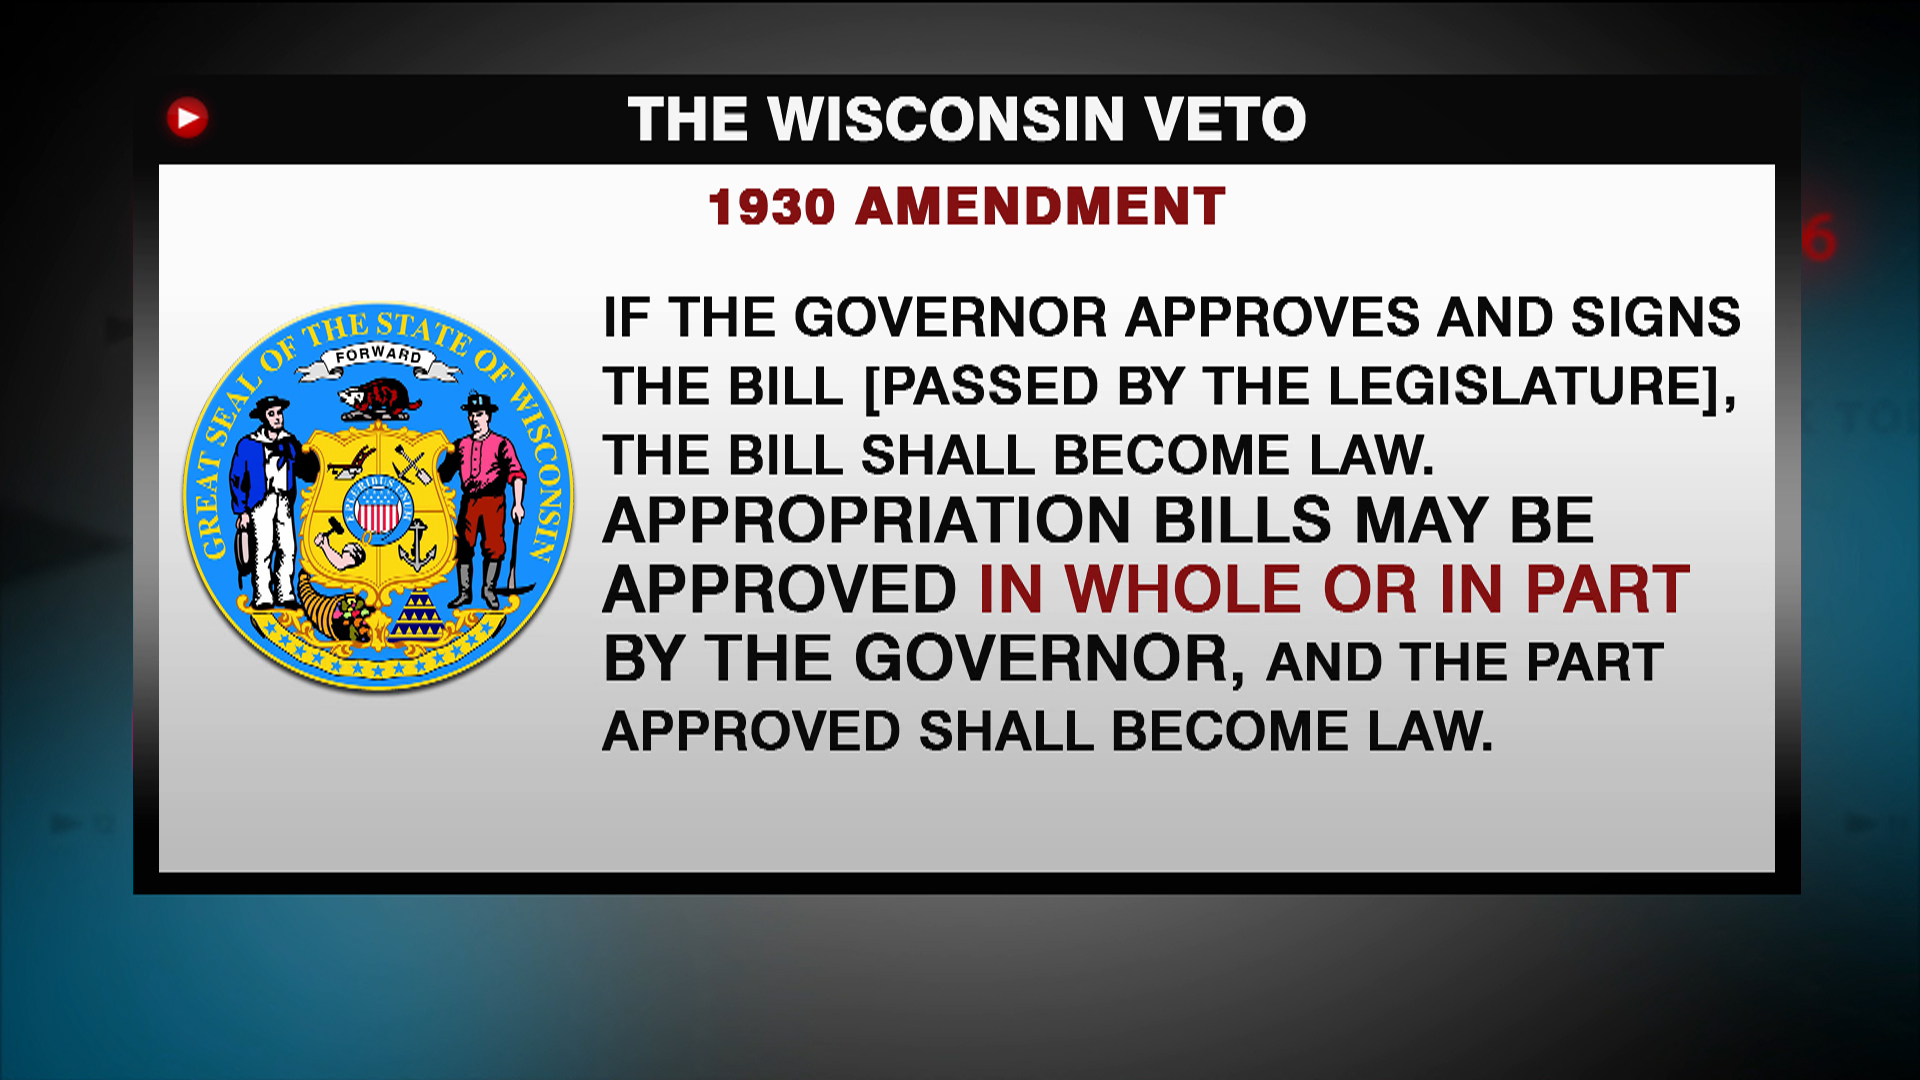 WI: Vetoes give governors unprecedented power